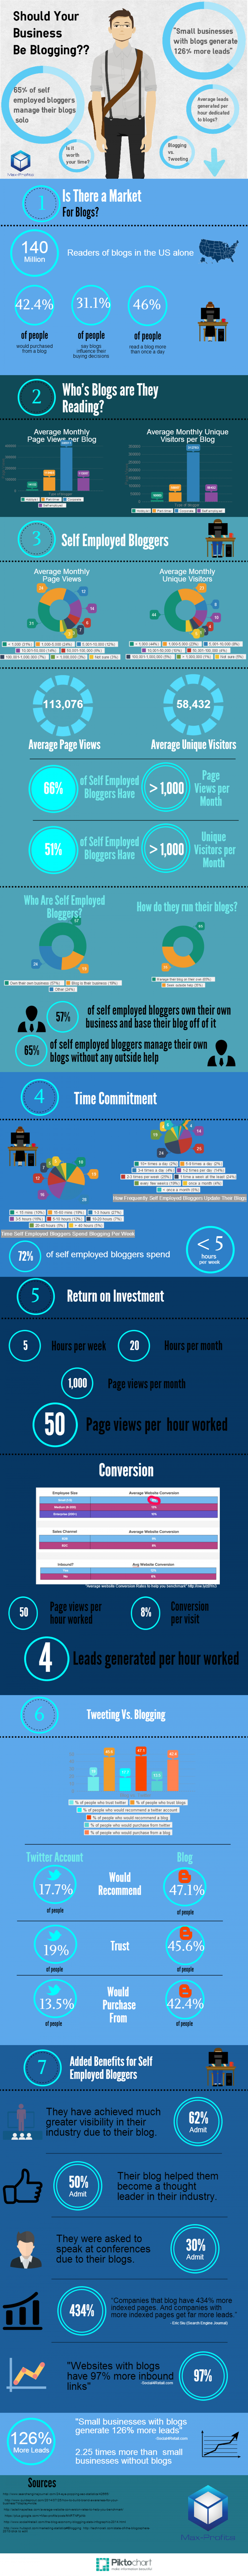 Should Your Business Be Blogging? Infographic